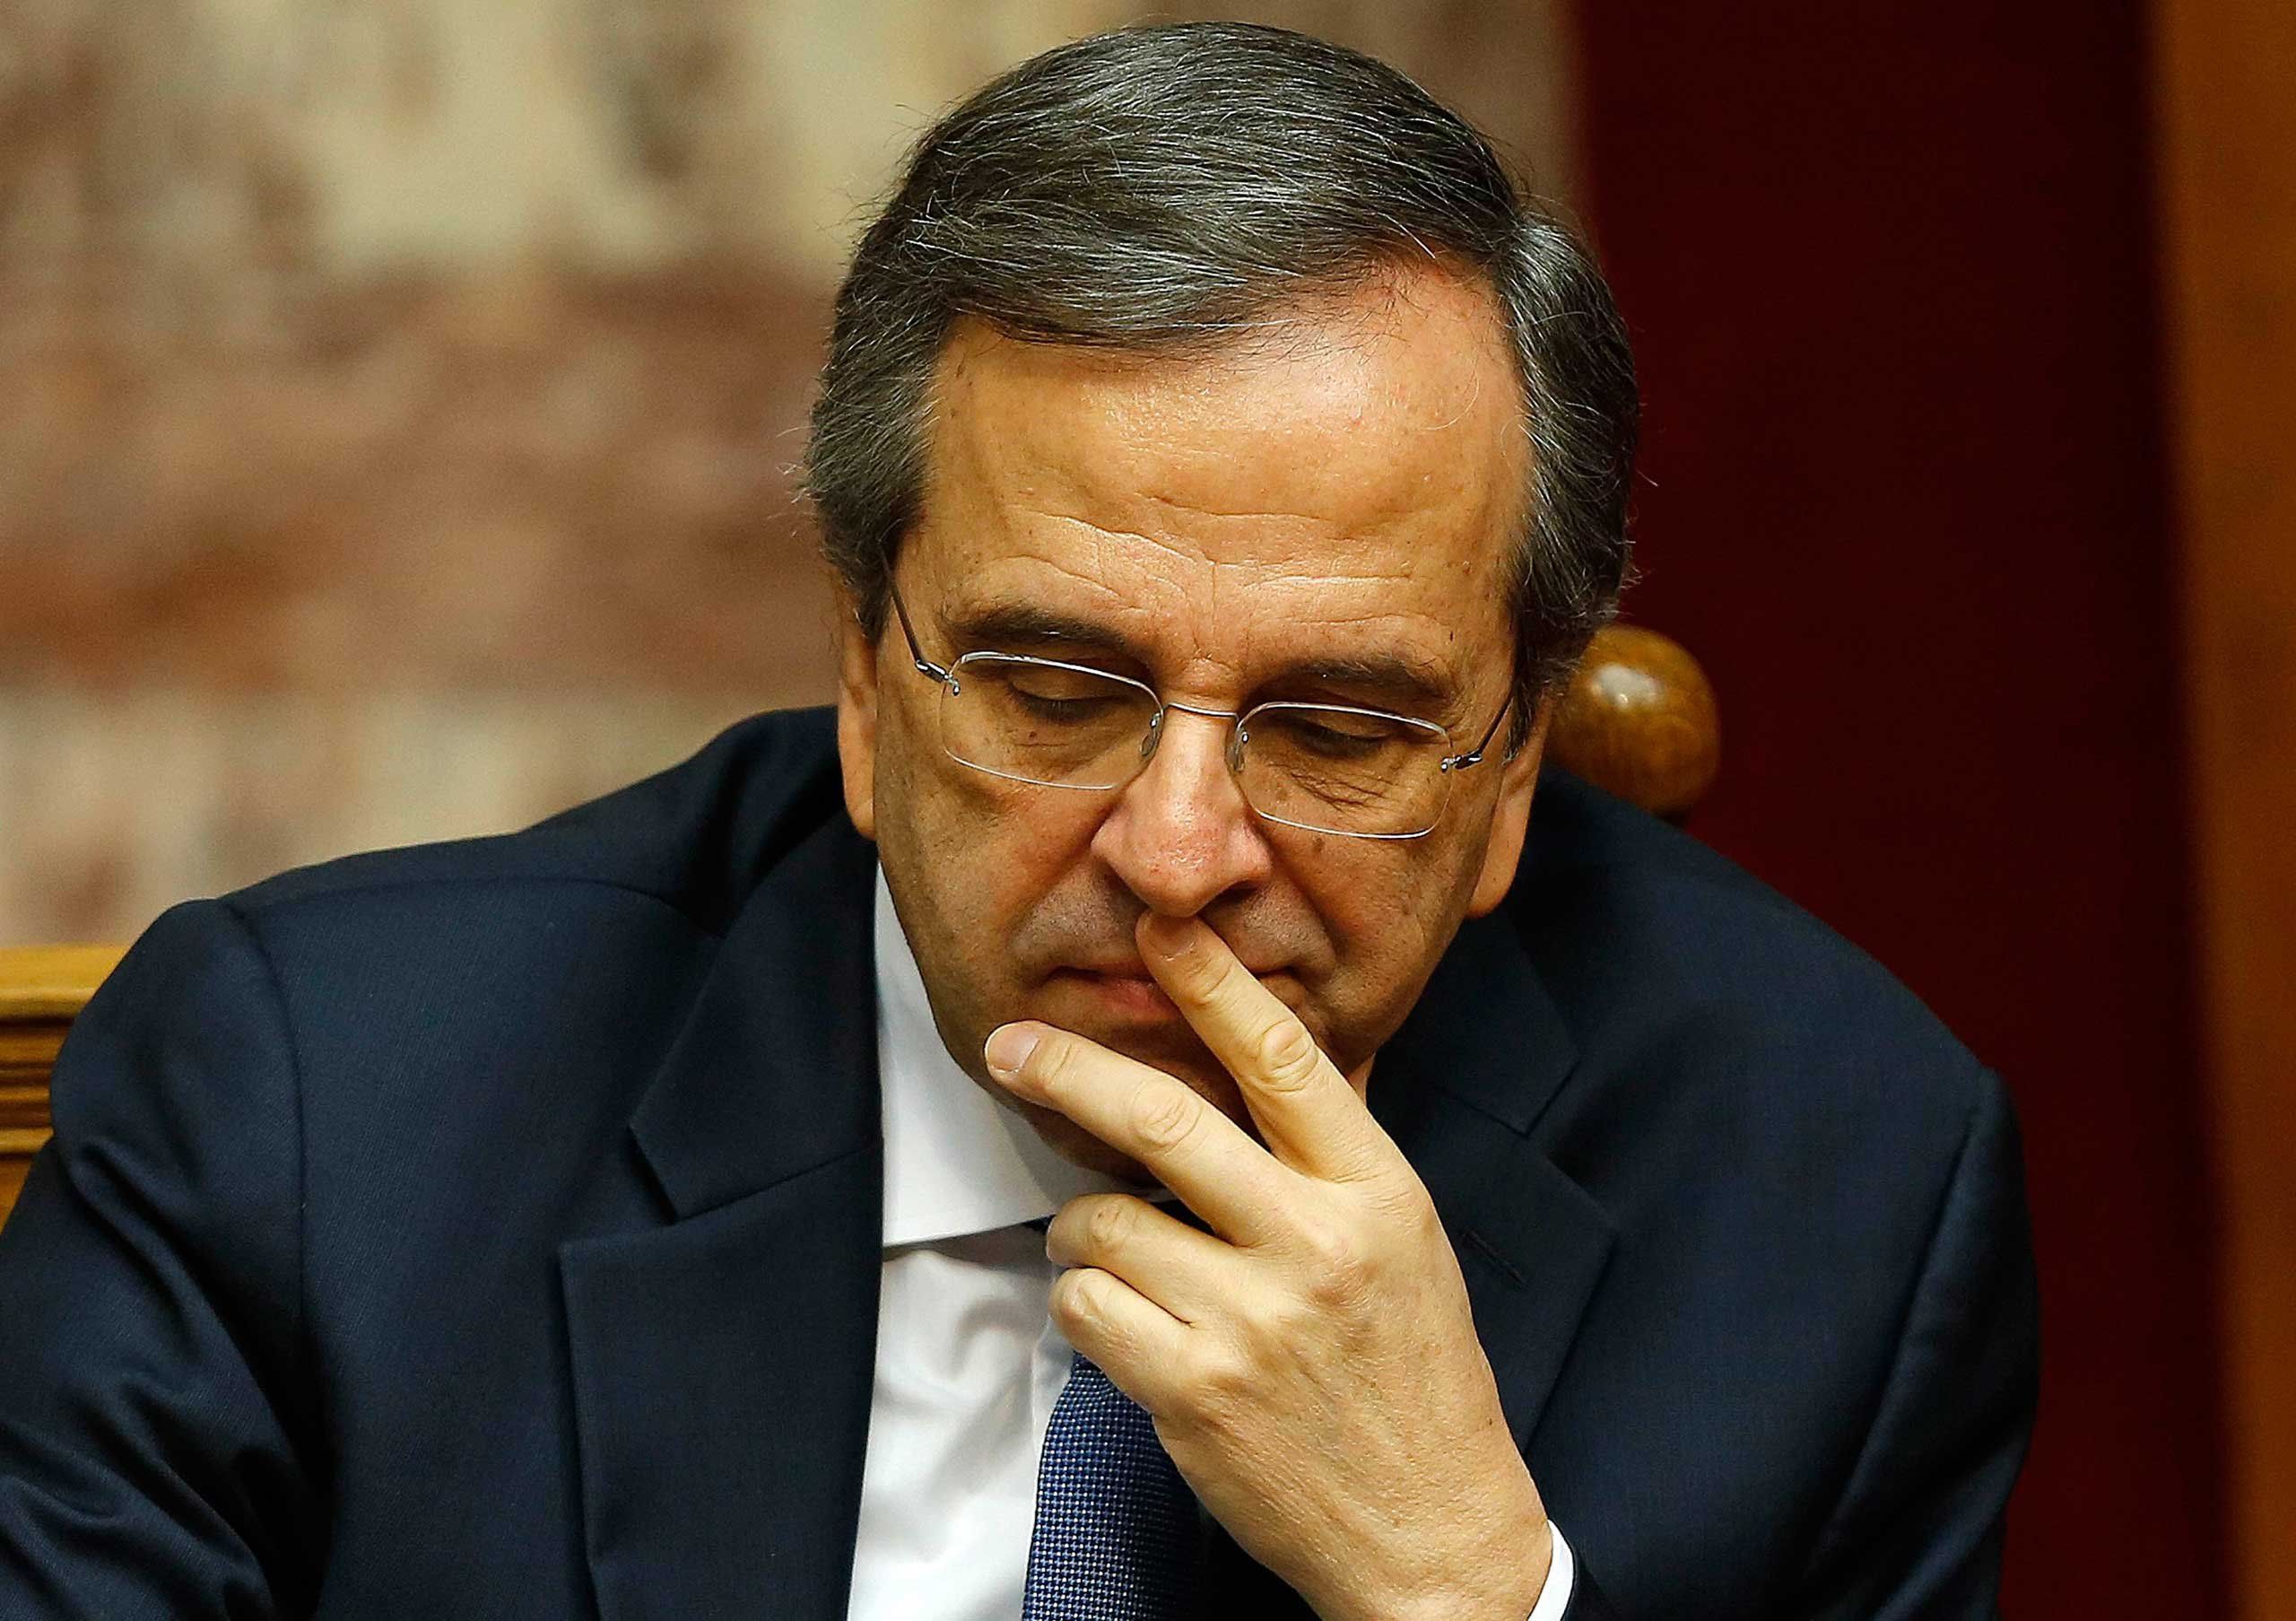 Greek Prime Minister Antonis Samaras reacts in parliament during the last round of a presidential vote in Athens on Dec. 29, 2014.